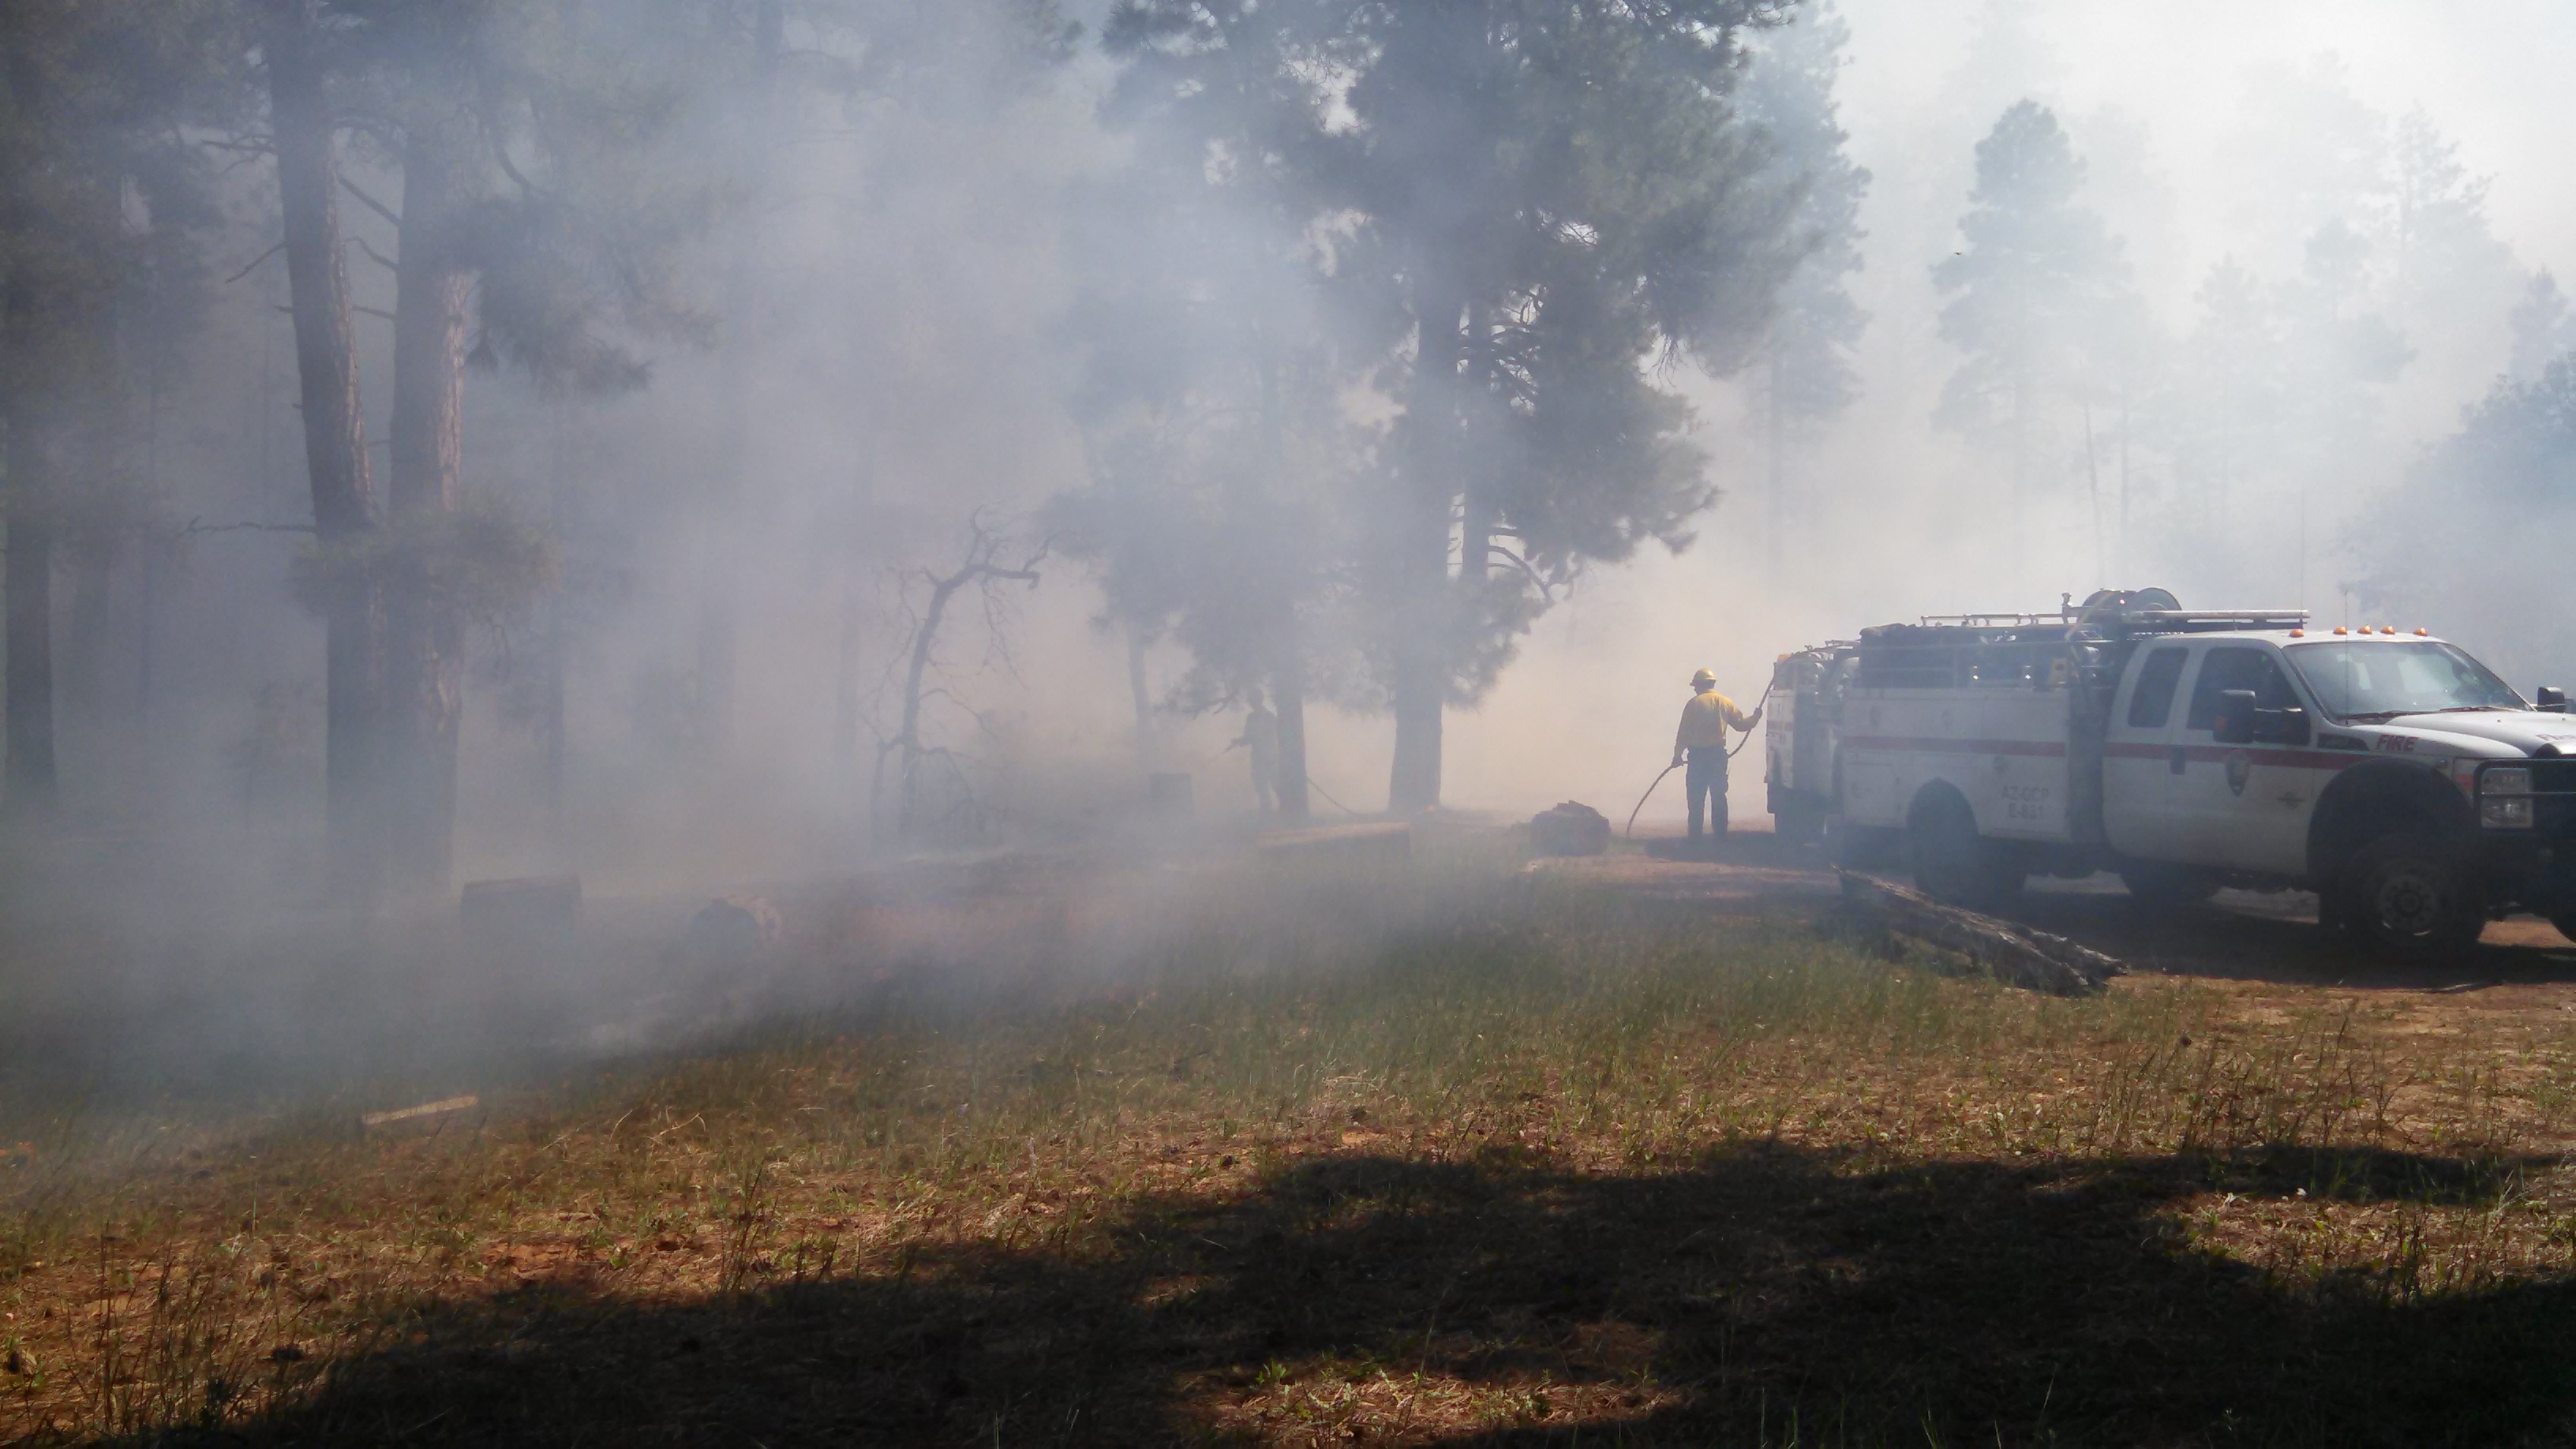 Wildland firefighters and engine near Shoshone Point